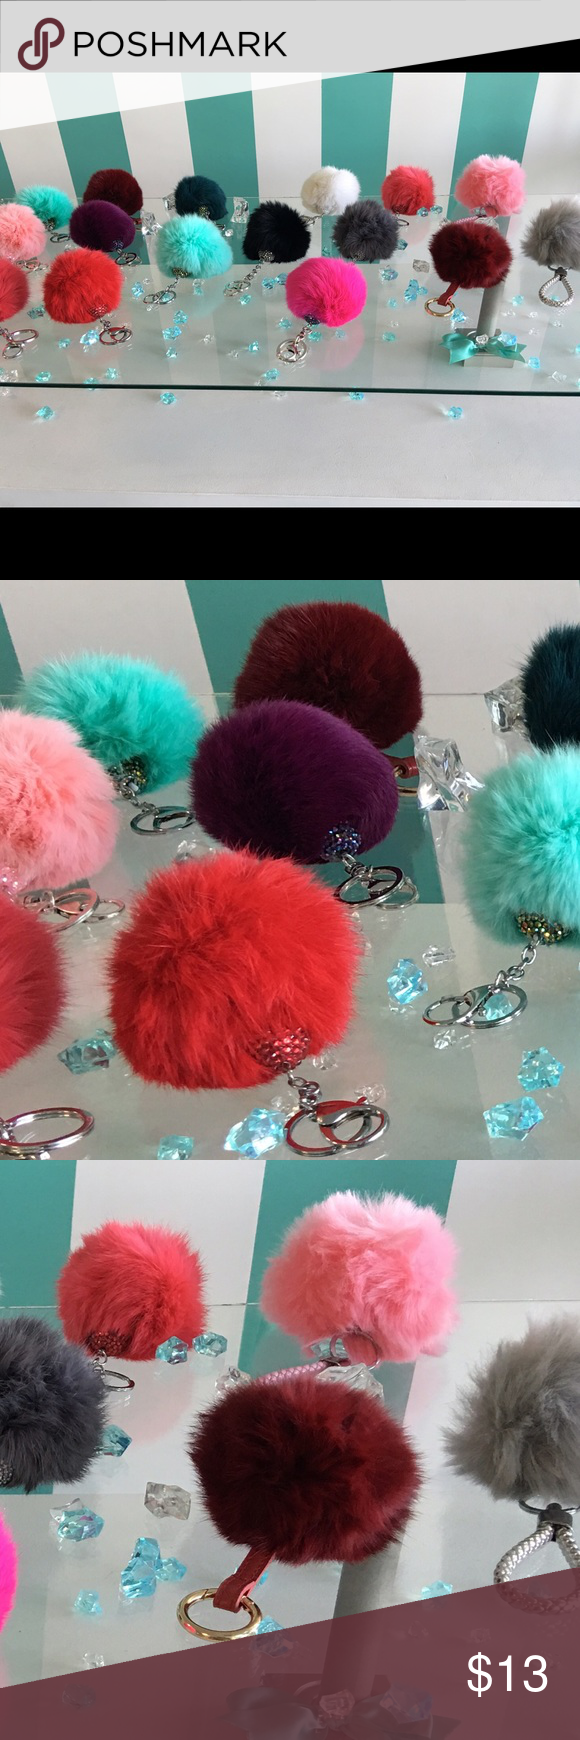 Lovely Rabbit Fur Pompom Keychains/Tassels These super soft, Rabbit Fur Keychain Pompoms and Bag Dangles come in multiple colors and are definitely an eye catcher. They are fashion forward and a beautiful accessory for any occasion. Accessories